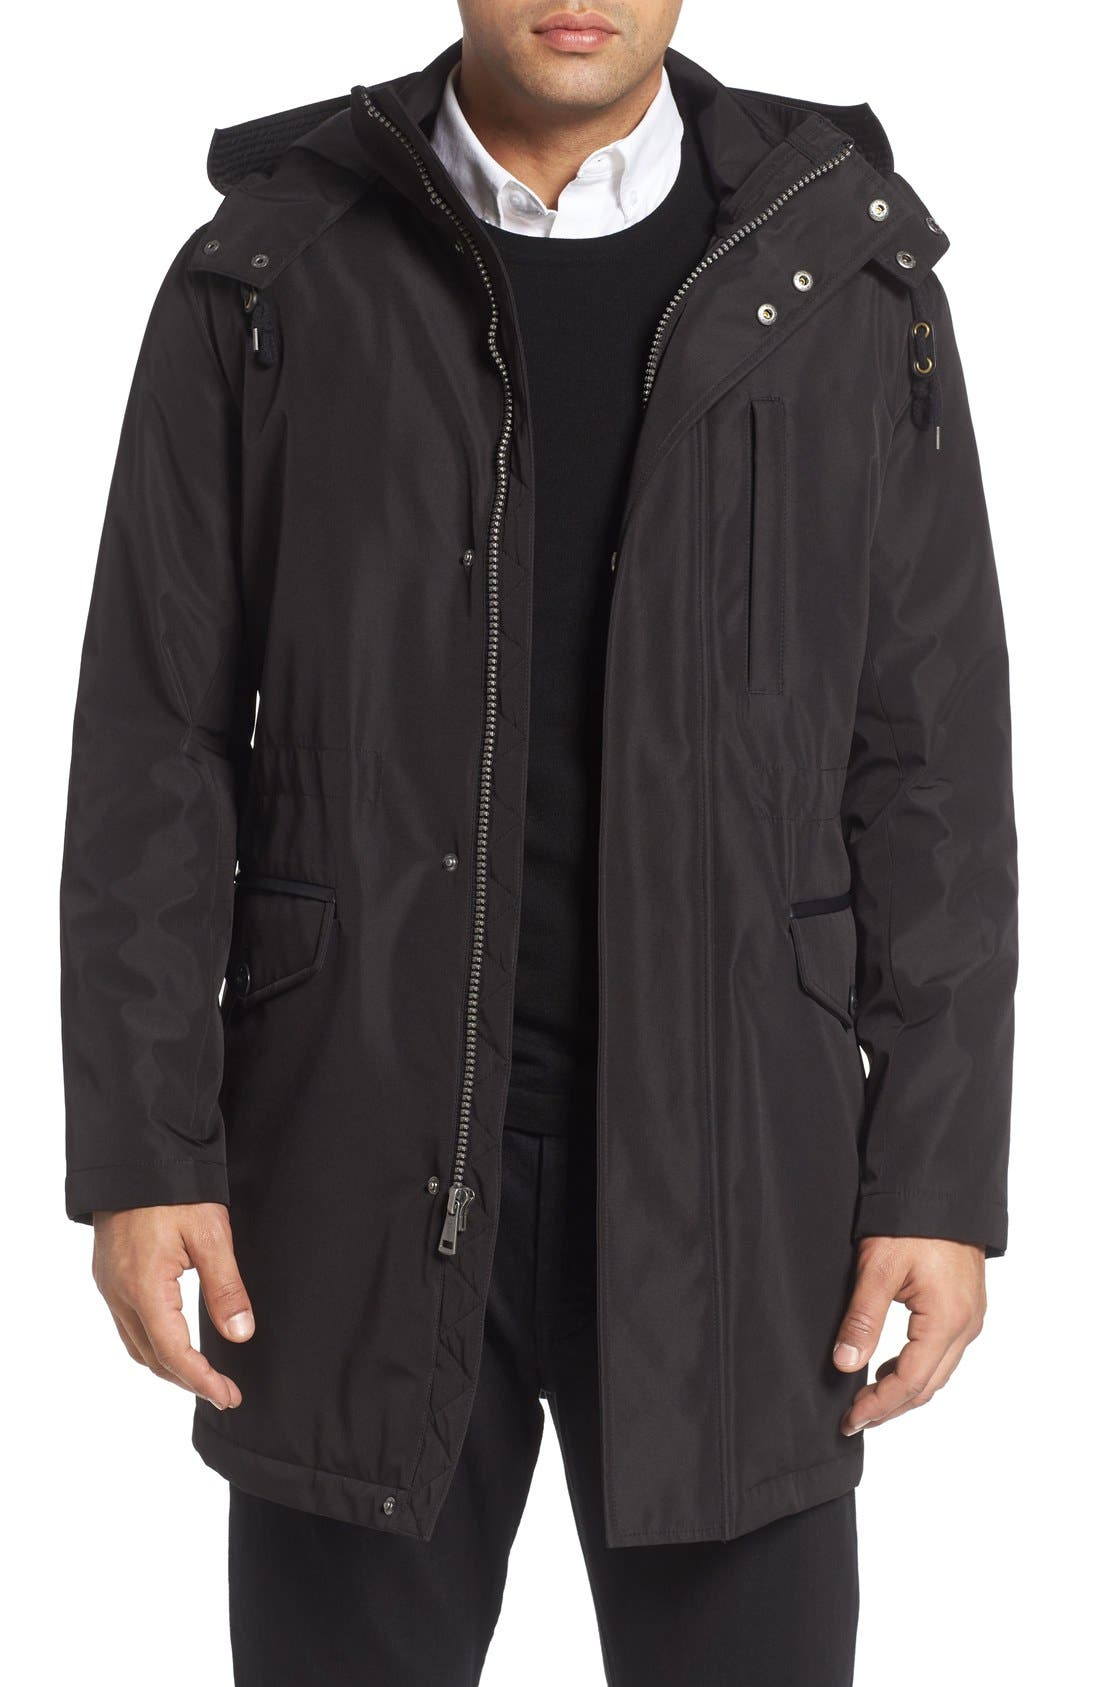 Cole Haan Insulated Water Resistant Car Coat